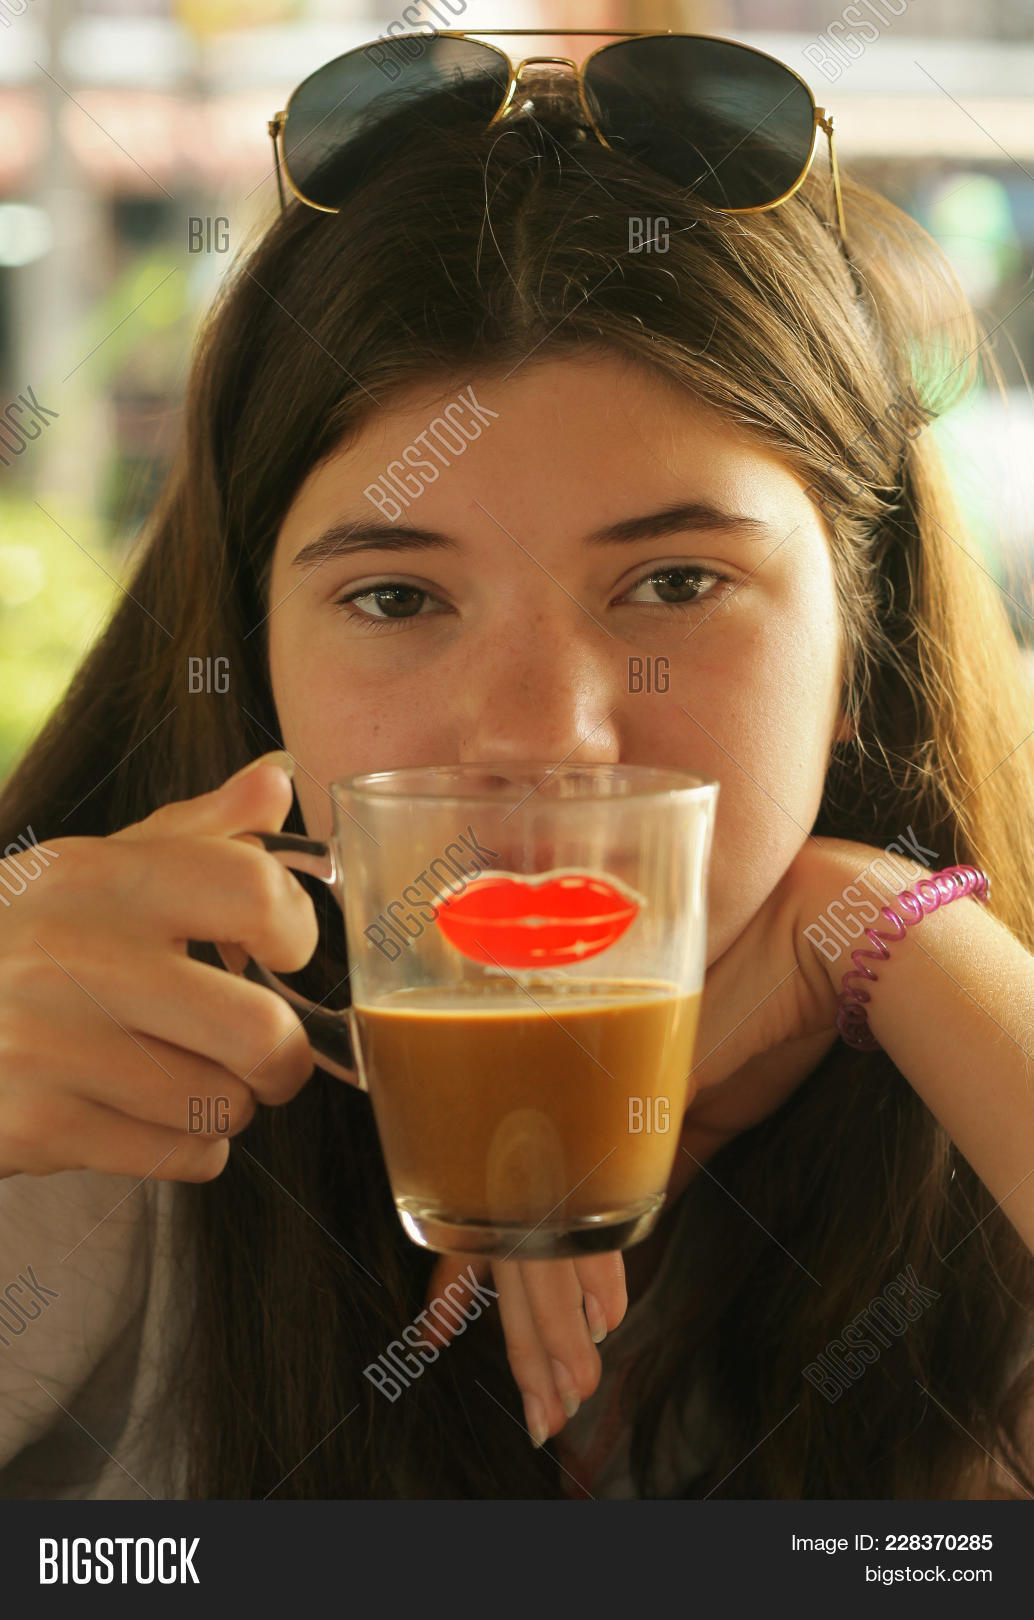 75ccec5c7828 Young and beautiful teen cofe lover girl drink coffee chocolate close up  vertical photo